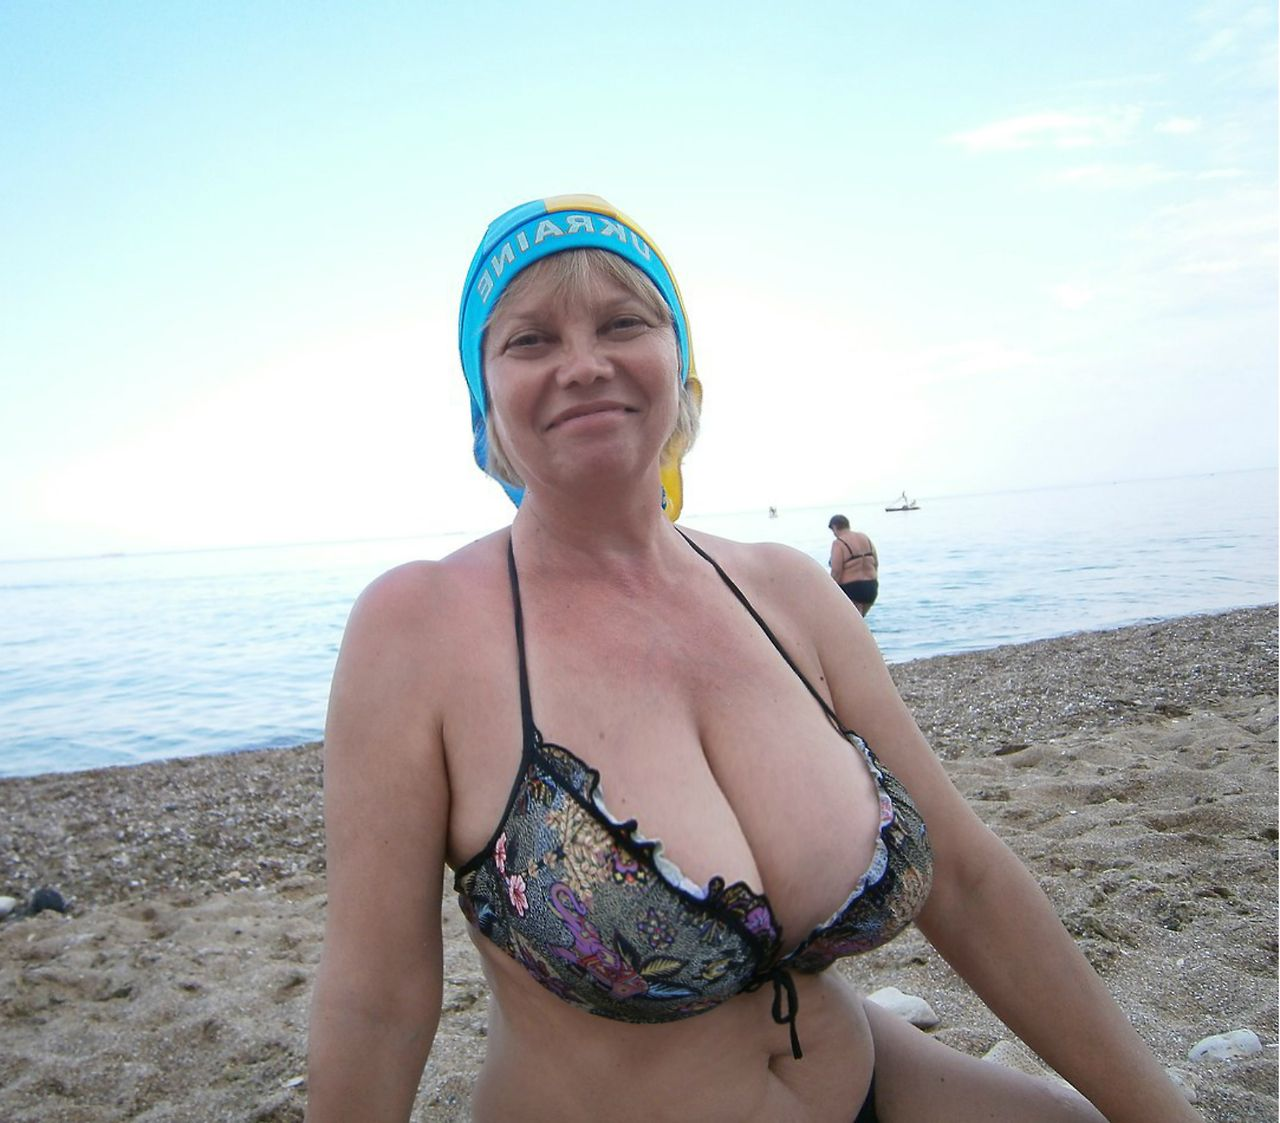 Busty milf on beach